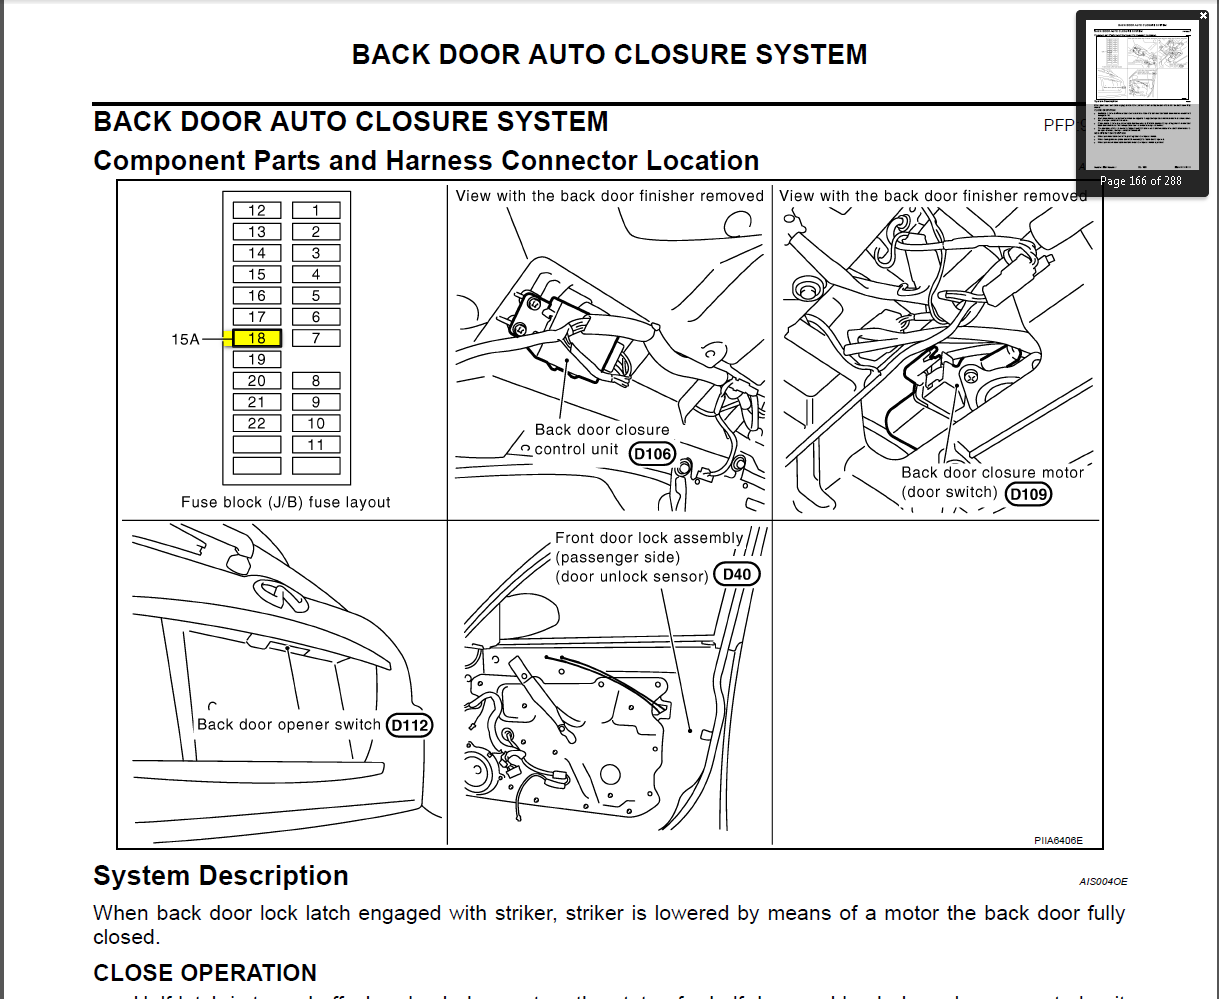 honda pilot fuse diagram g37 fuse box diagram 2009 honda pilot fuse box diagram g37 fuse box diagram